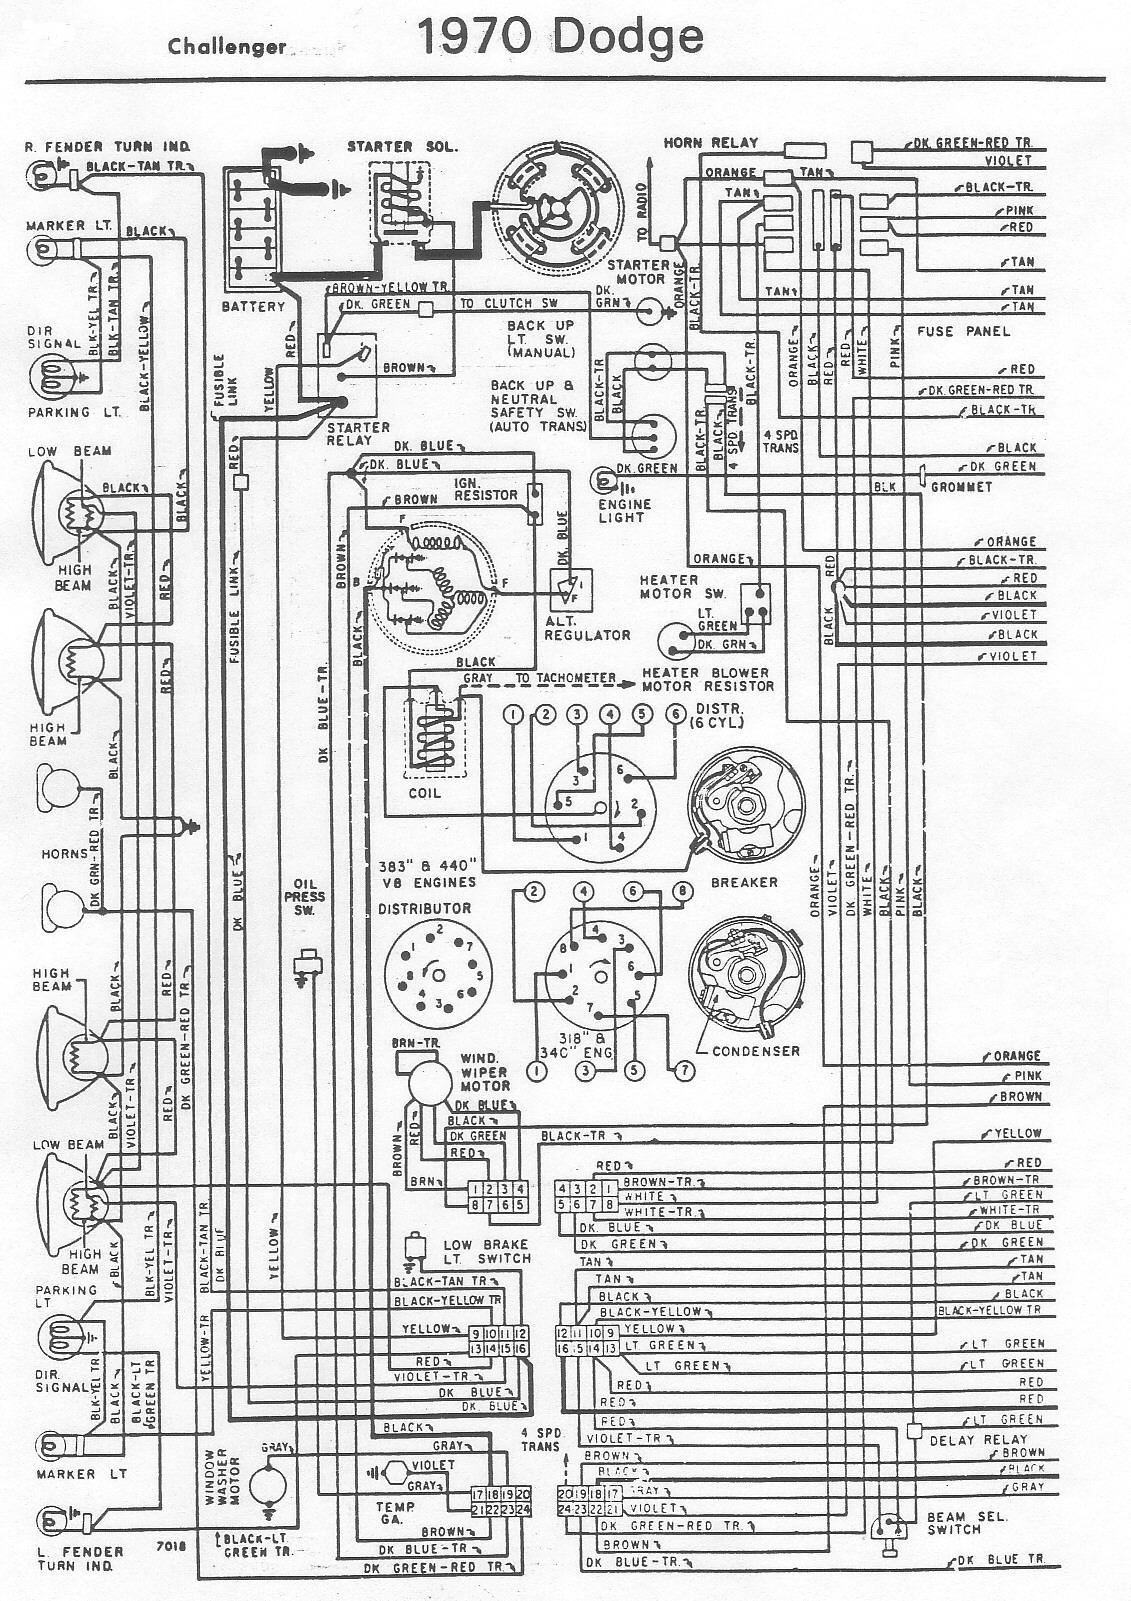 1970 plymouth duster wiring harness wirdig 1970 dodge challenger wiring diagram dodge challenger wiring diagram